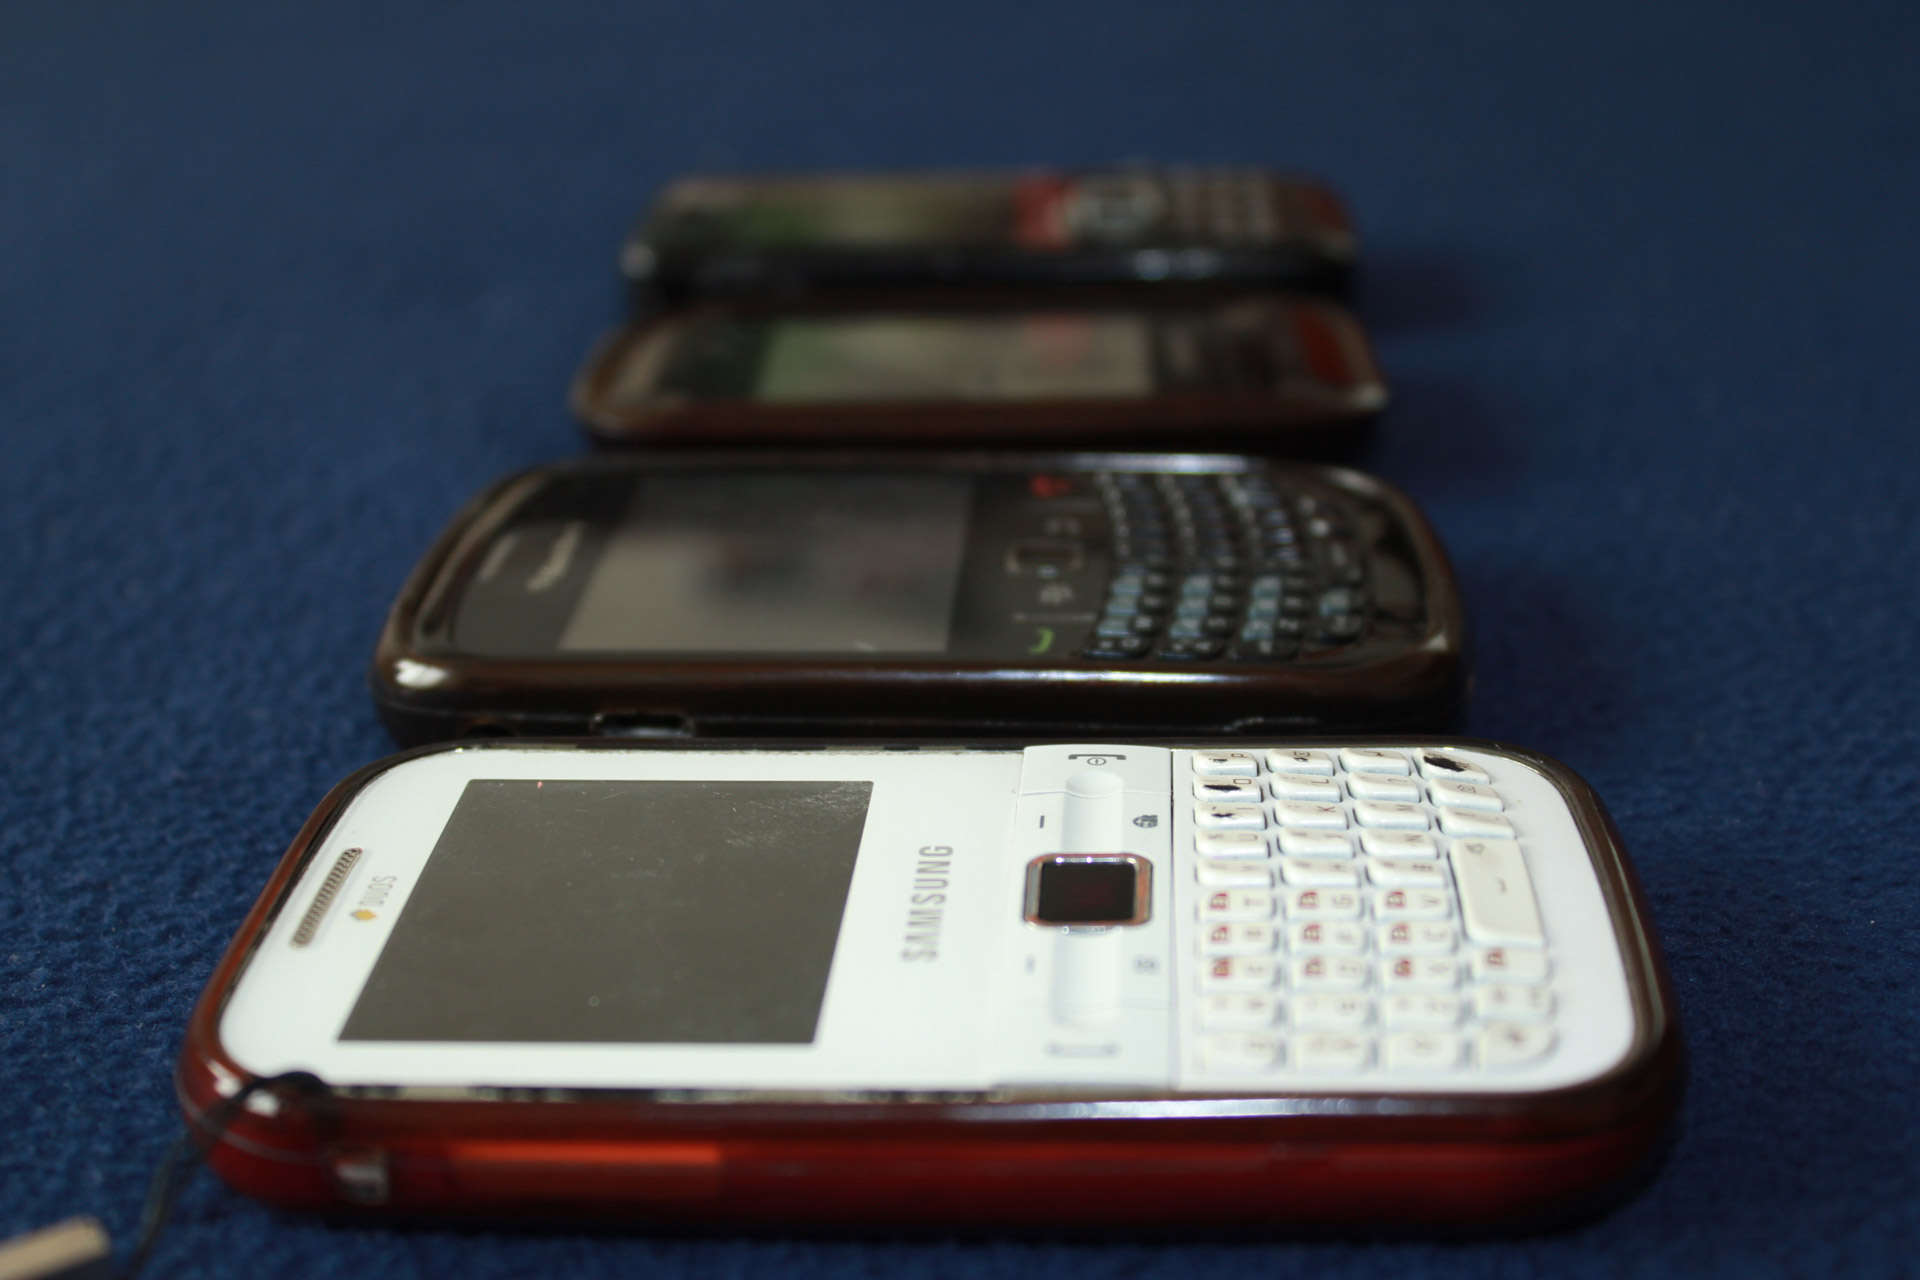 mobile phones, communications, telephone